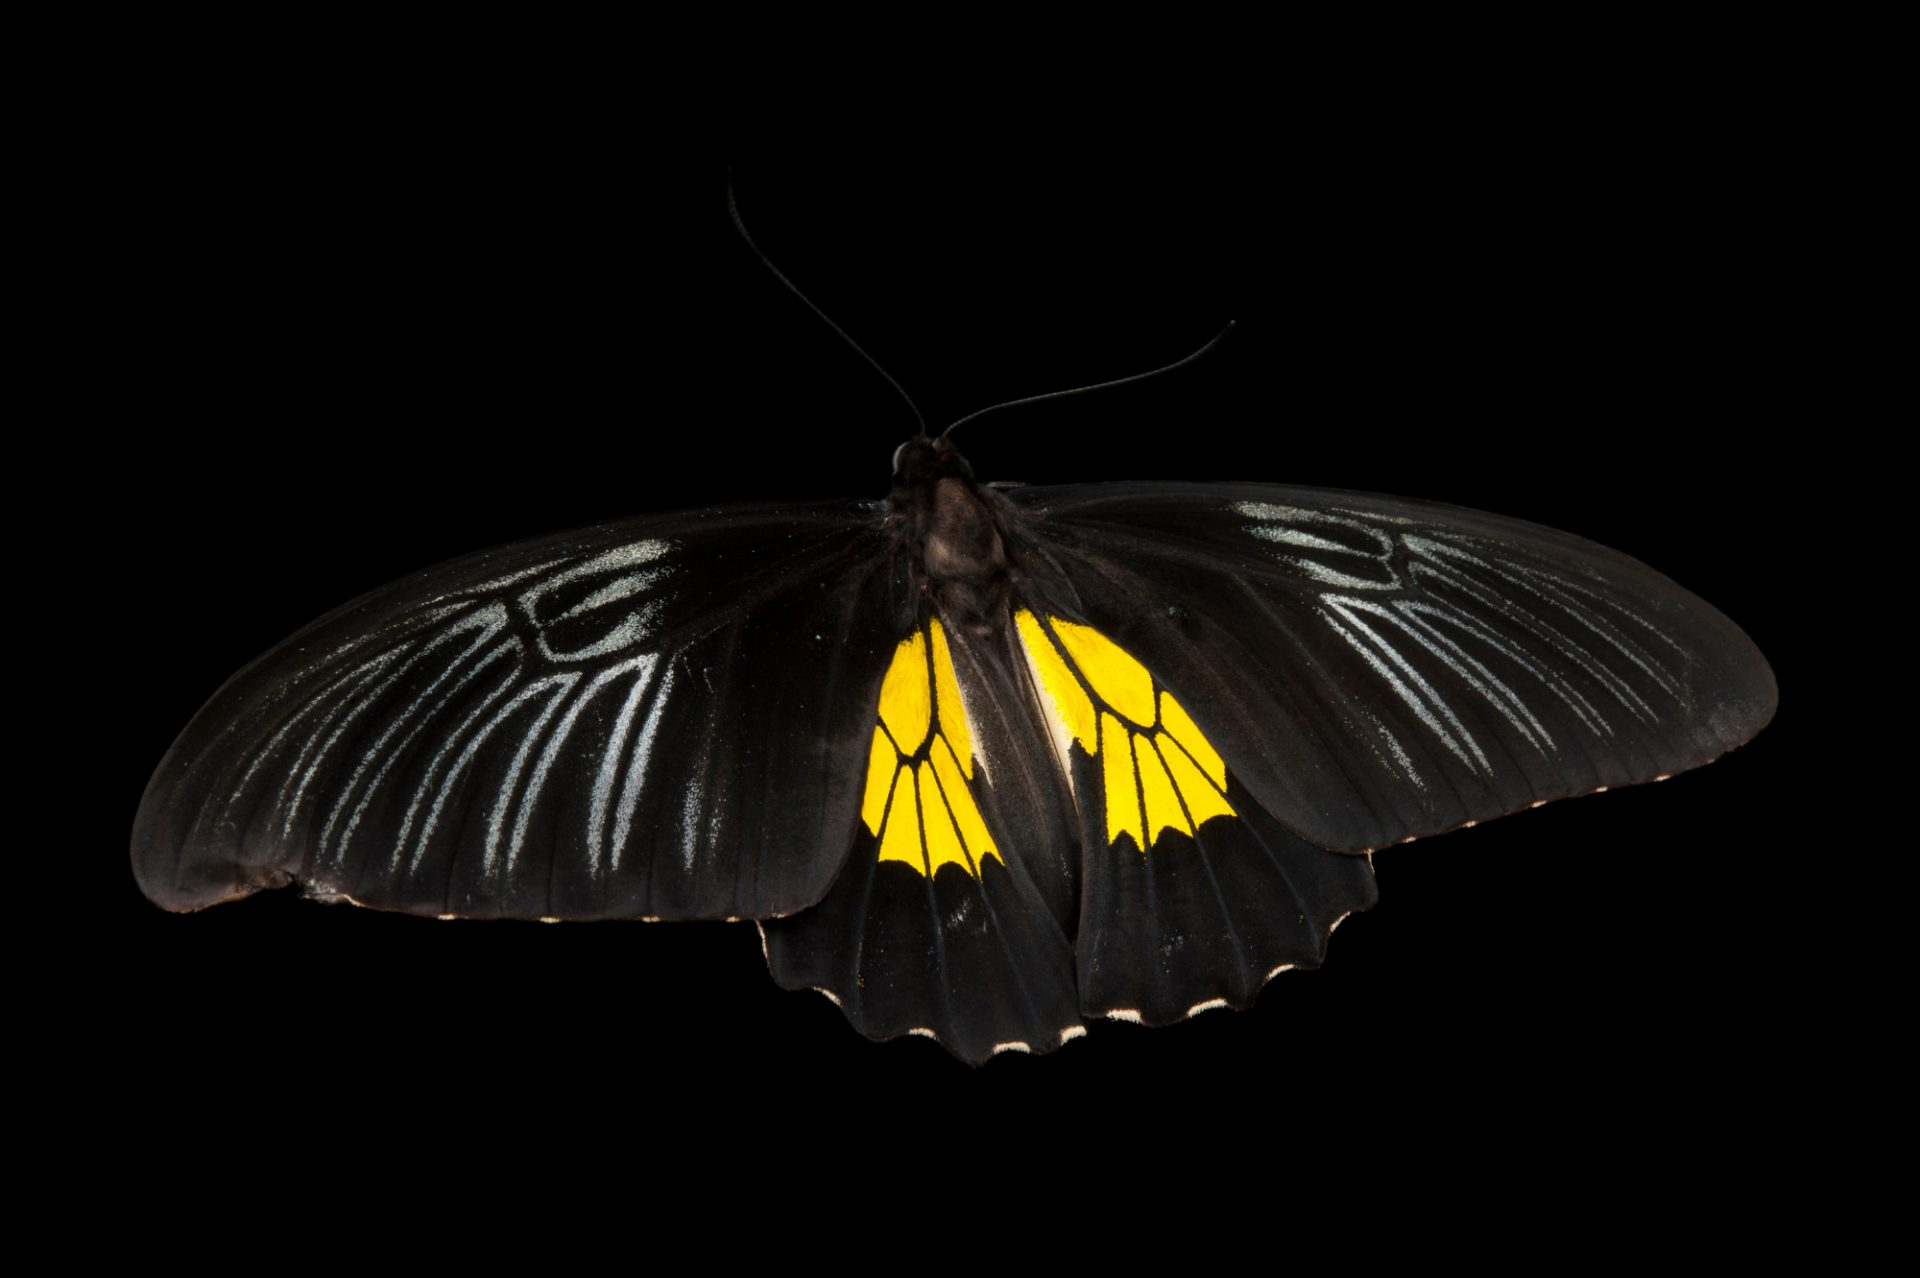 Common birdwing butterfly (Troides helena) at the Audubon Insectarium in New Orleans.